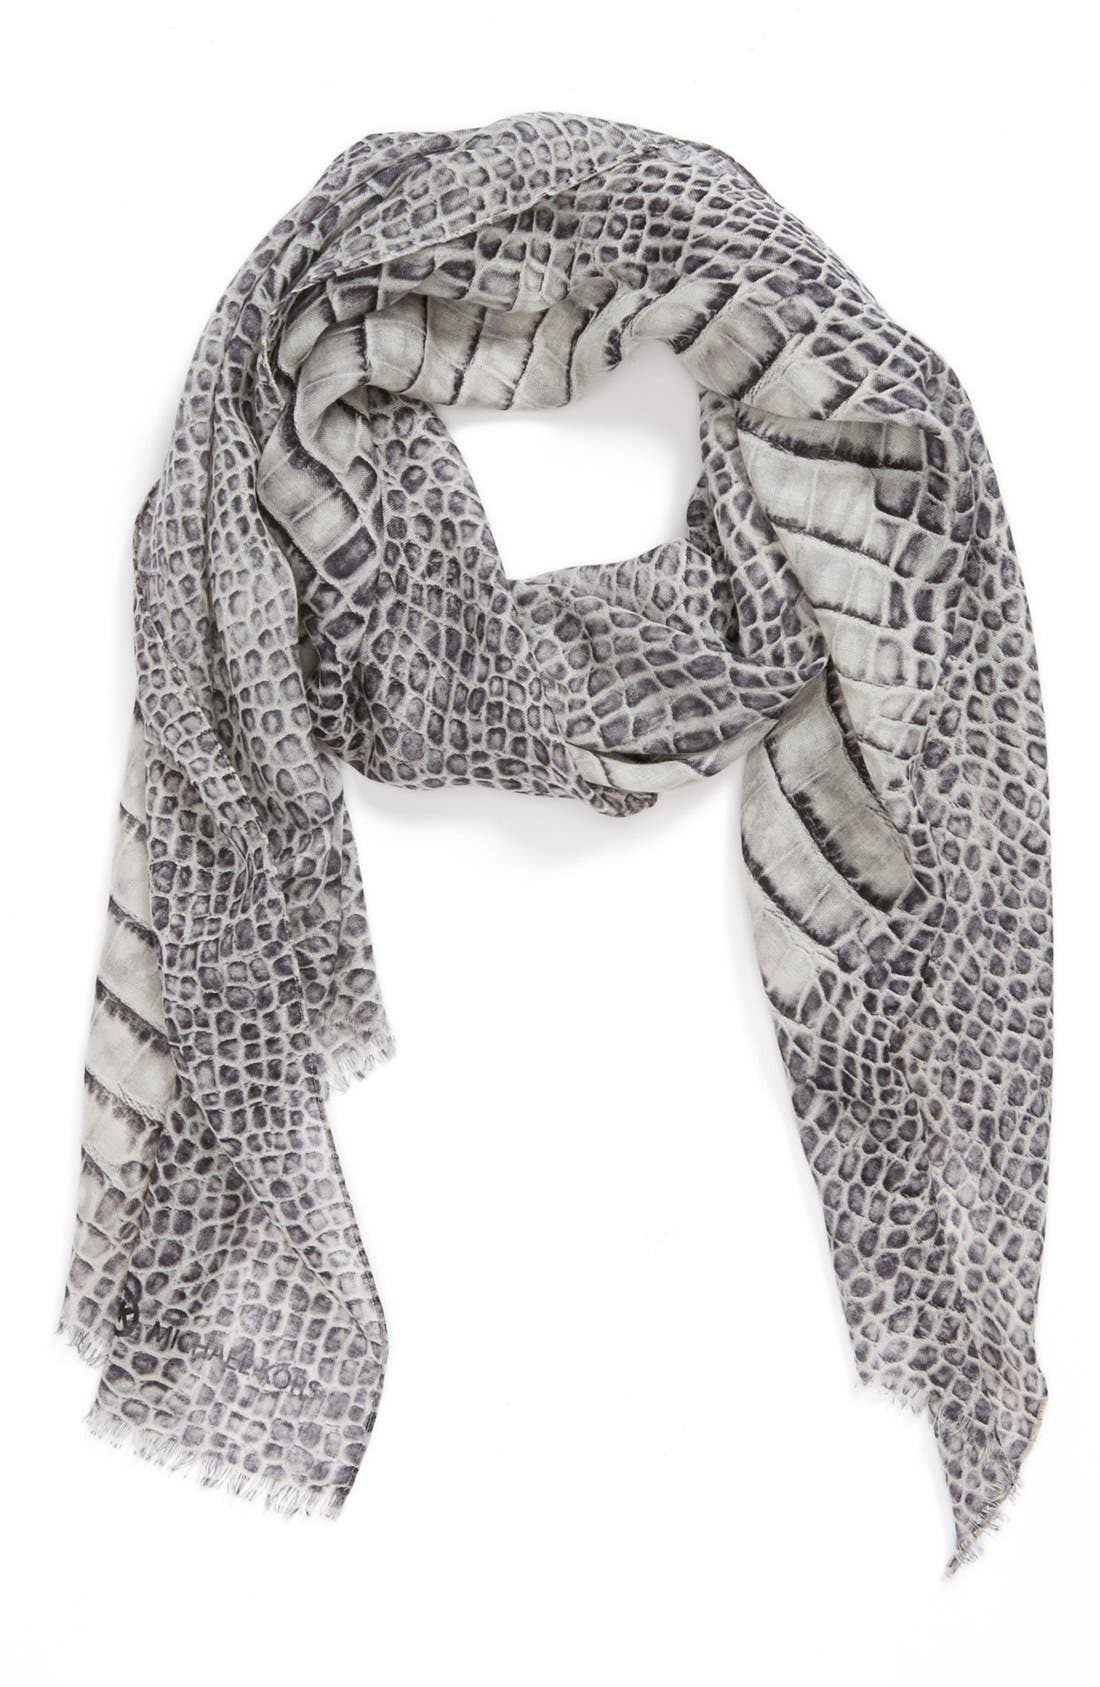 Alternate Image 1 Selected - MICHAEL Michael Kors 'Spined Croc' Wool & Silk Scarf